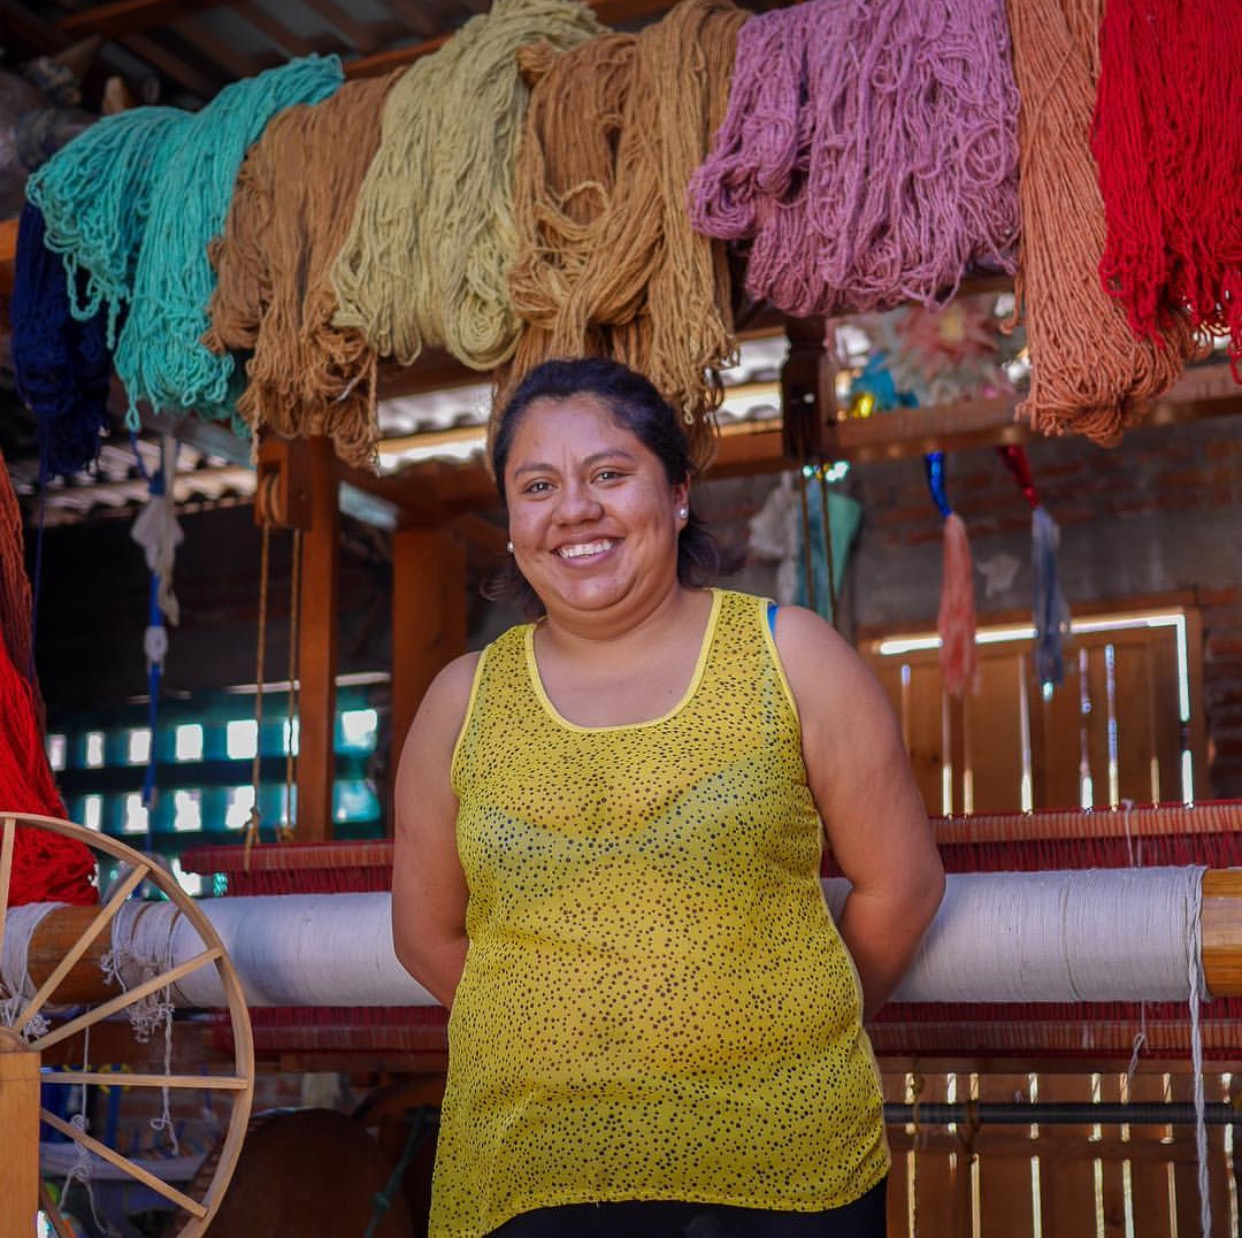 A participant in the microfinance organization Fundación En Vía. The nonprofit doesn't rely on donations. Rather, they run tours out into communities of indigenous women who use micro-loans to build their businesses. Visitors can tour their workshops to learn about their culture and skills, and the fee for the tour gets reinvested back into the loan pool that these women can pull from again.  Photo by Shannon O'Donnell .